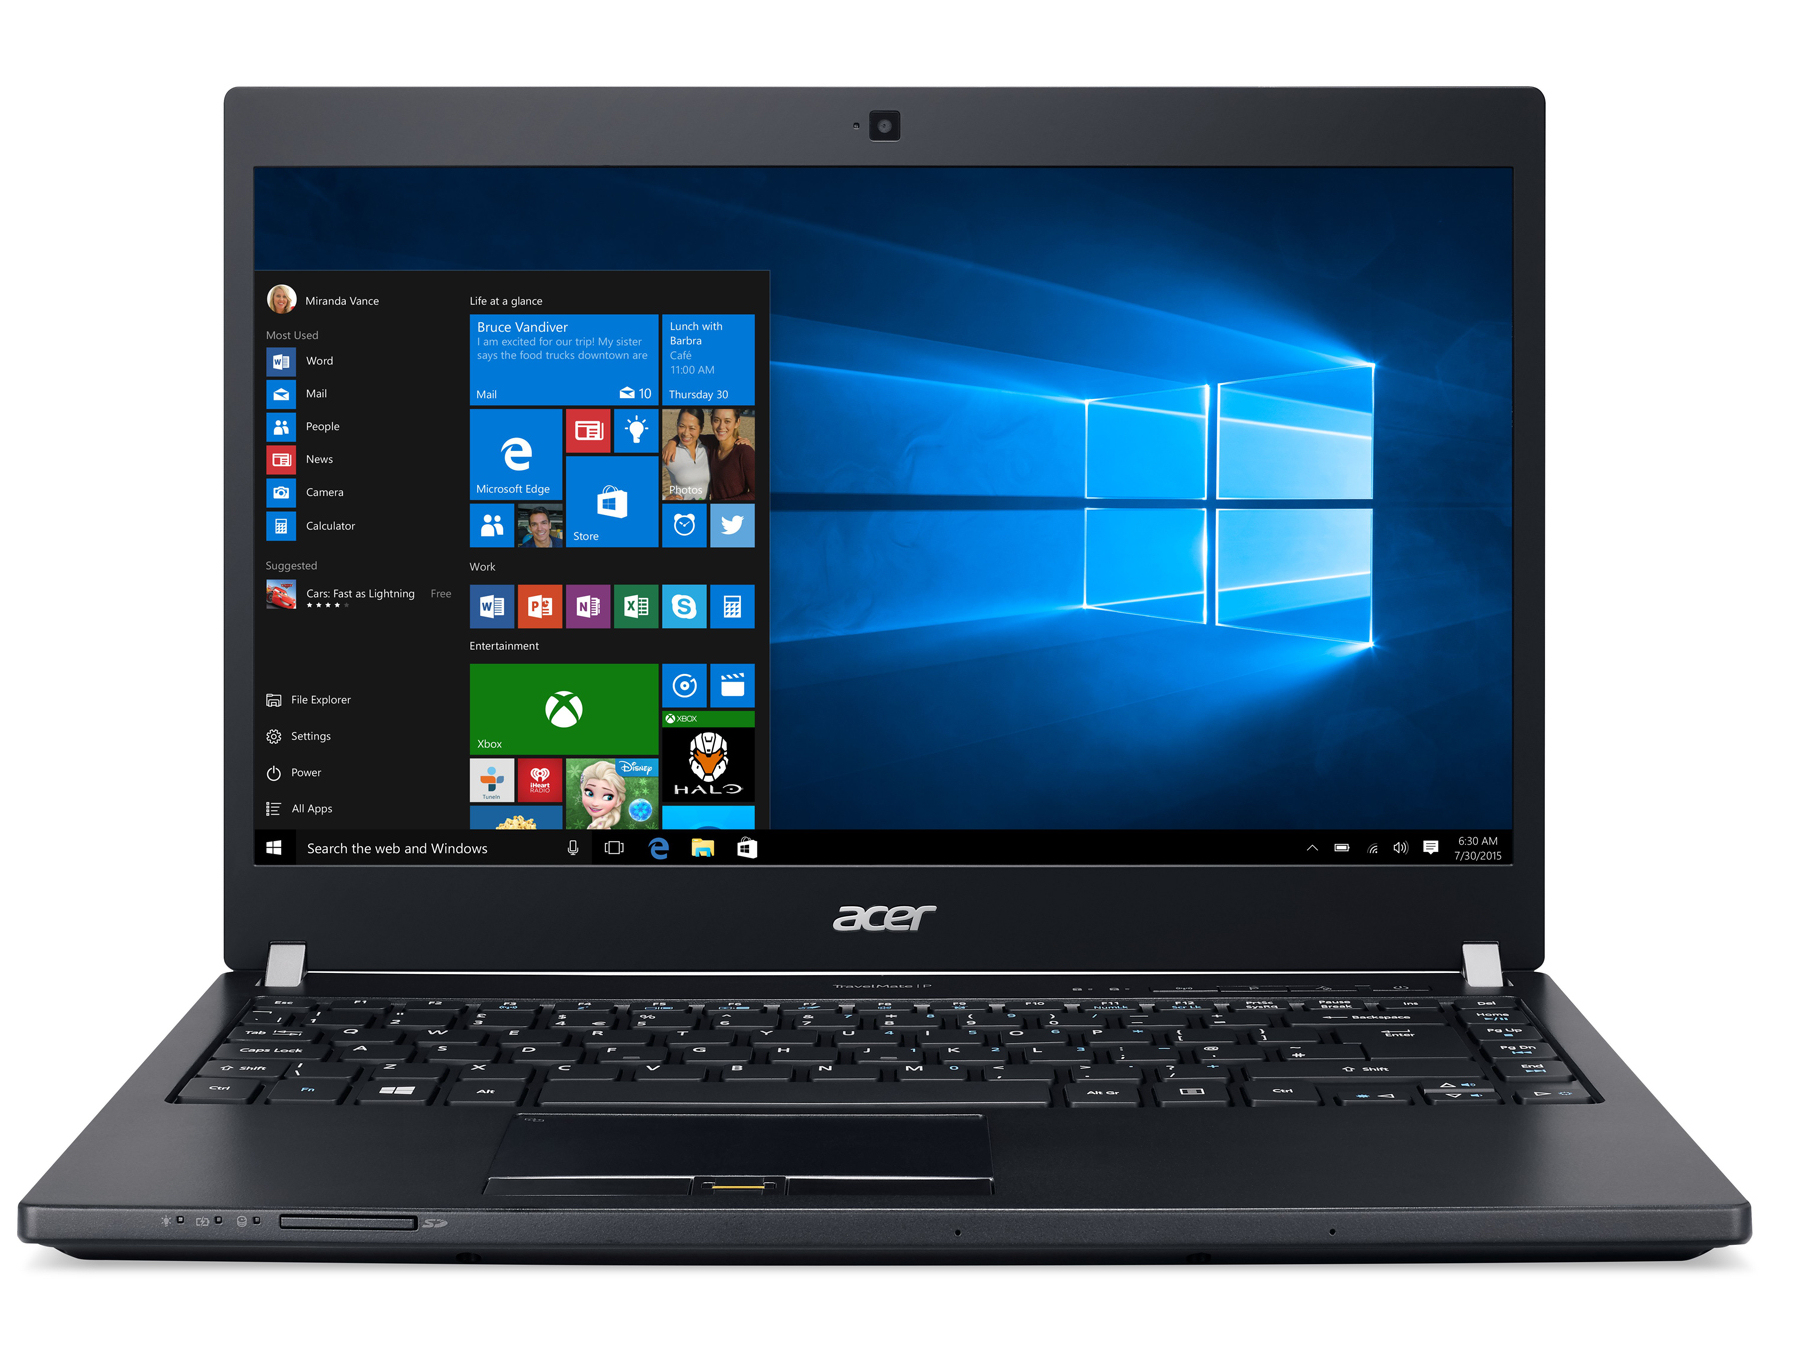 Acer TravelMate P653-M Intel WiDi Windows 8 Driver Download